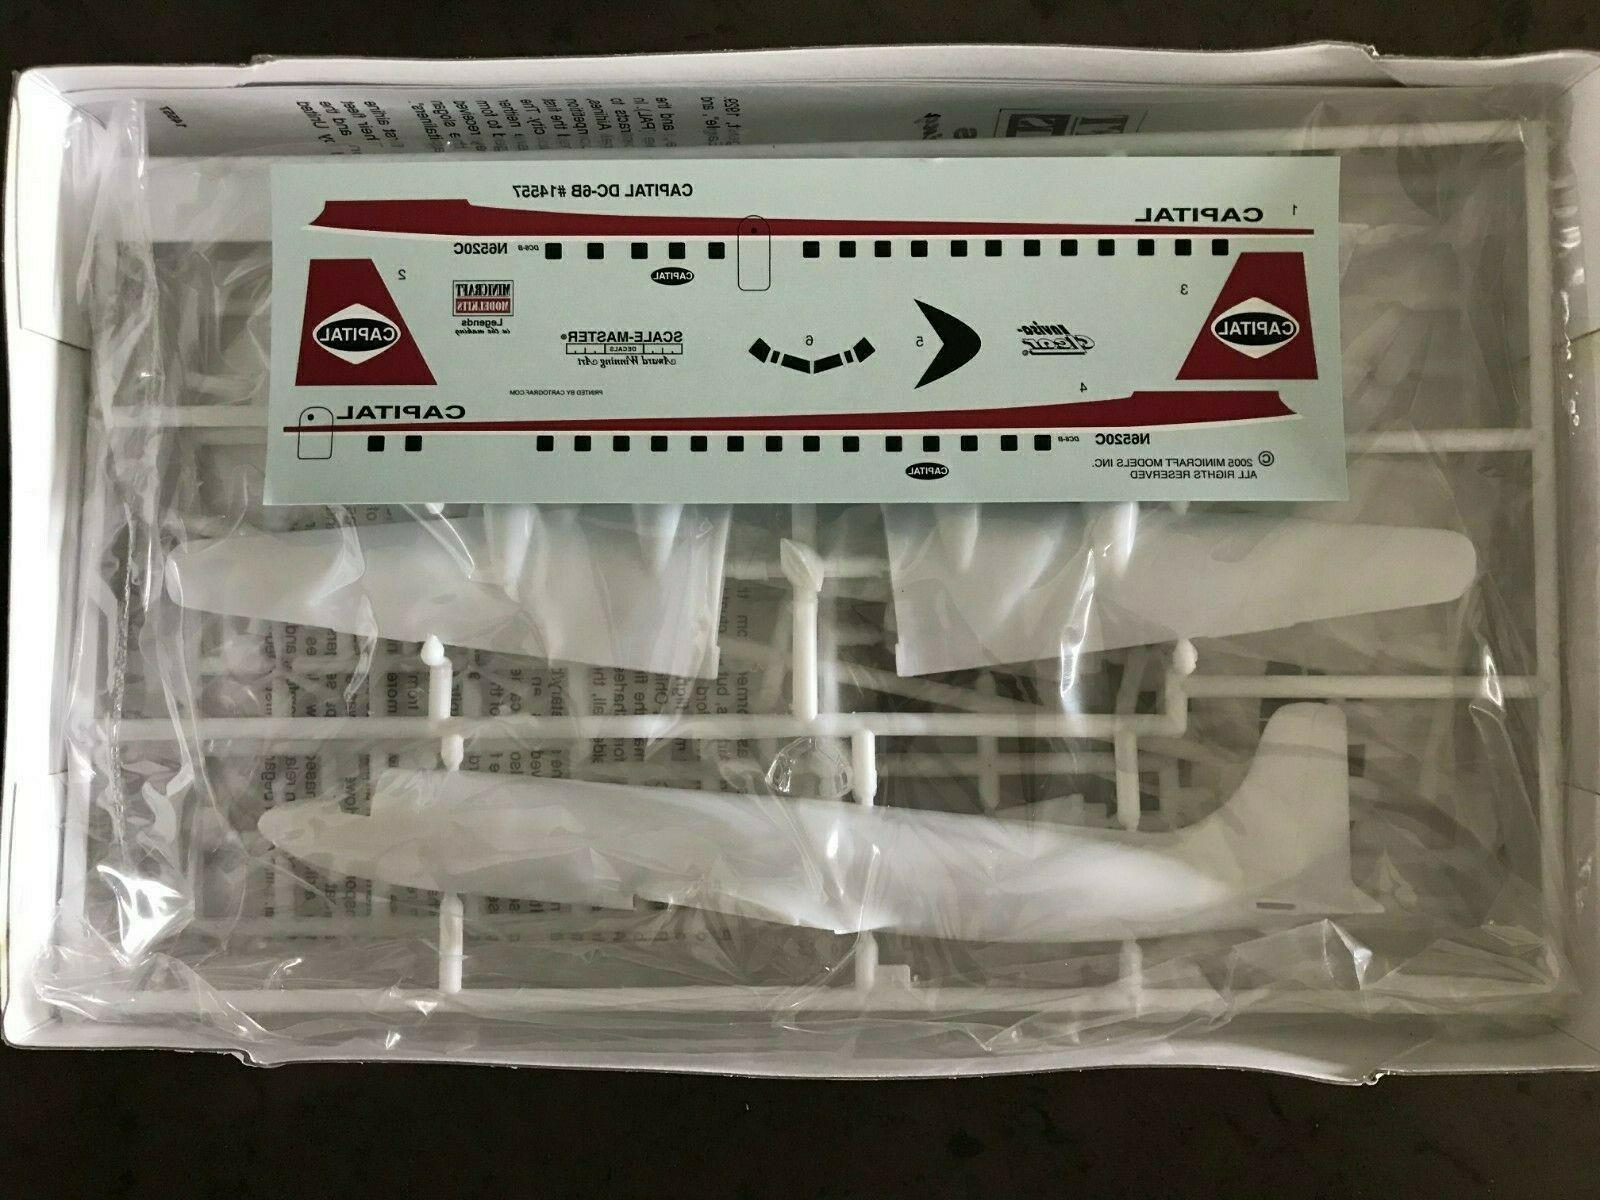 Minicraft Scale Air Model Kit - NEW- SHIPPING